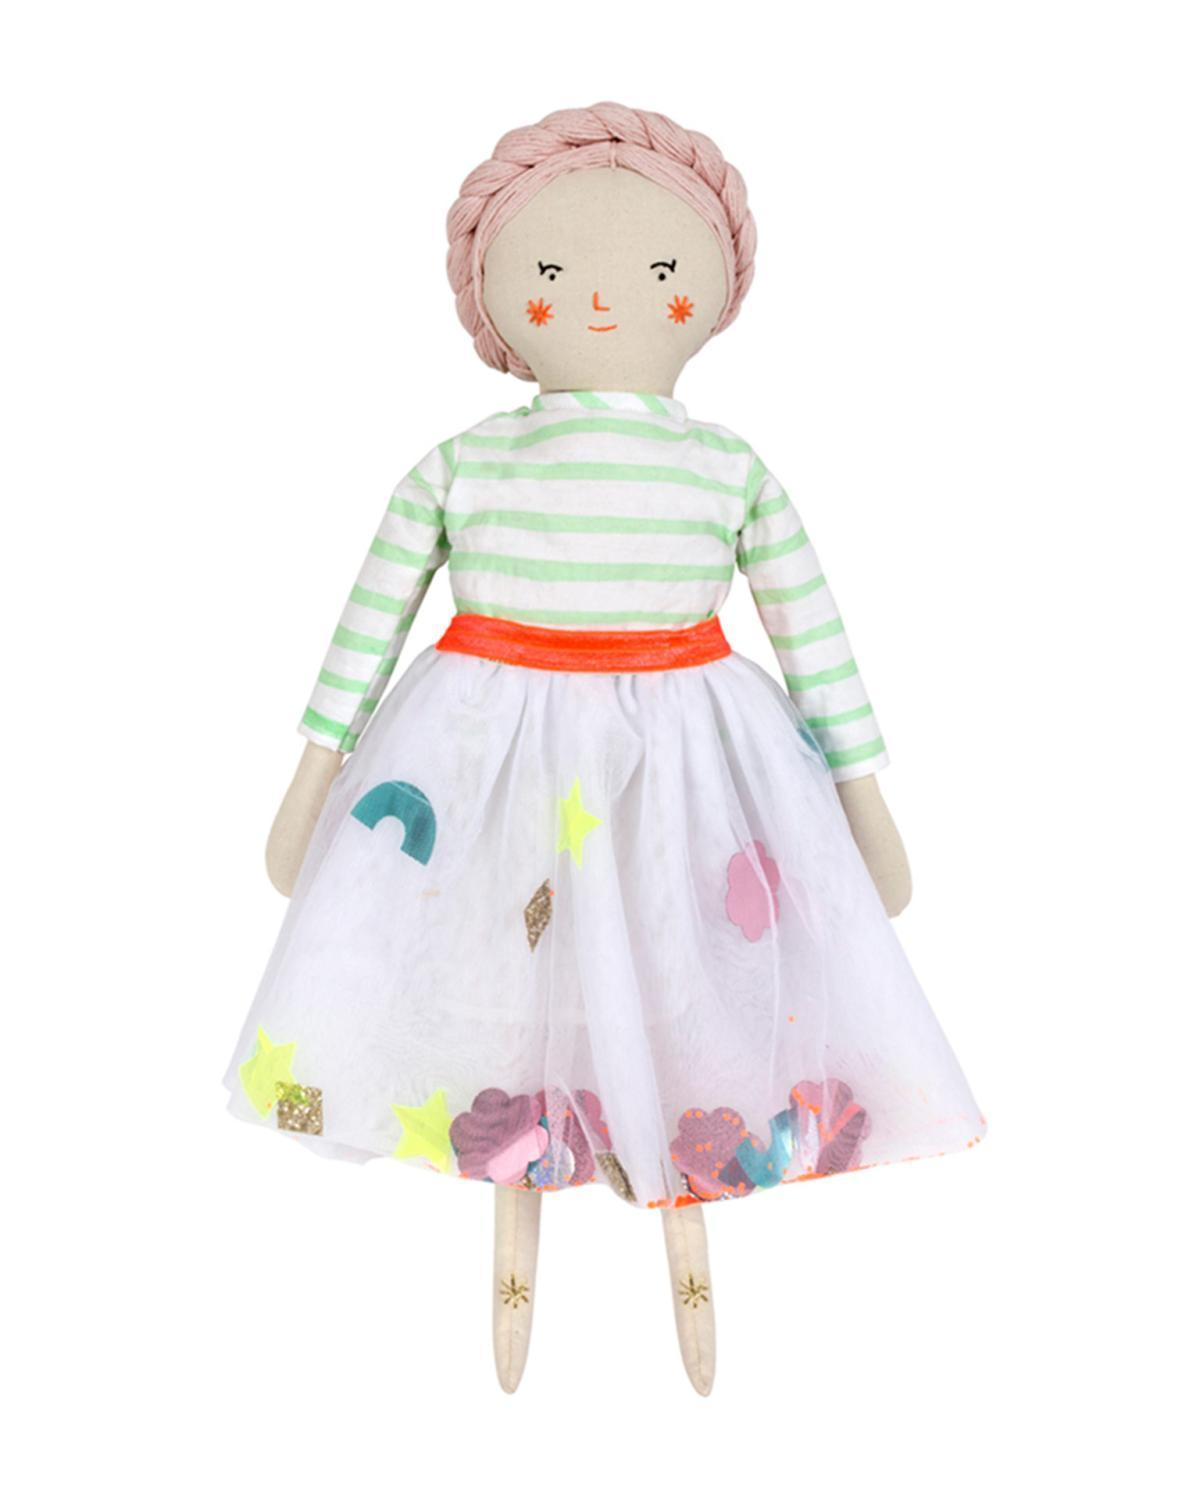 Little meri meri play matilda doll